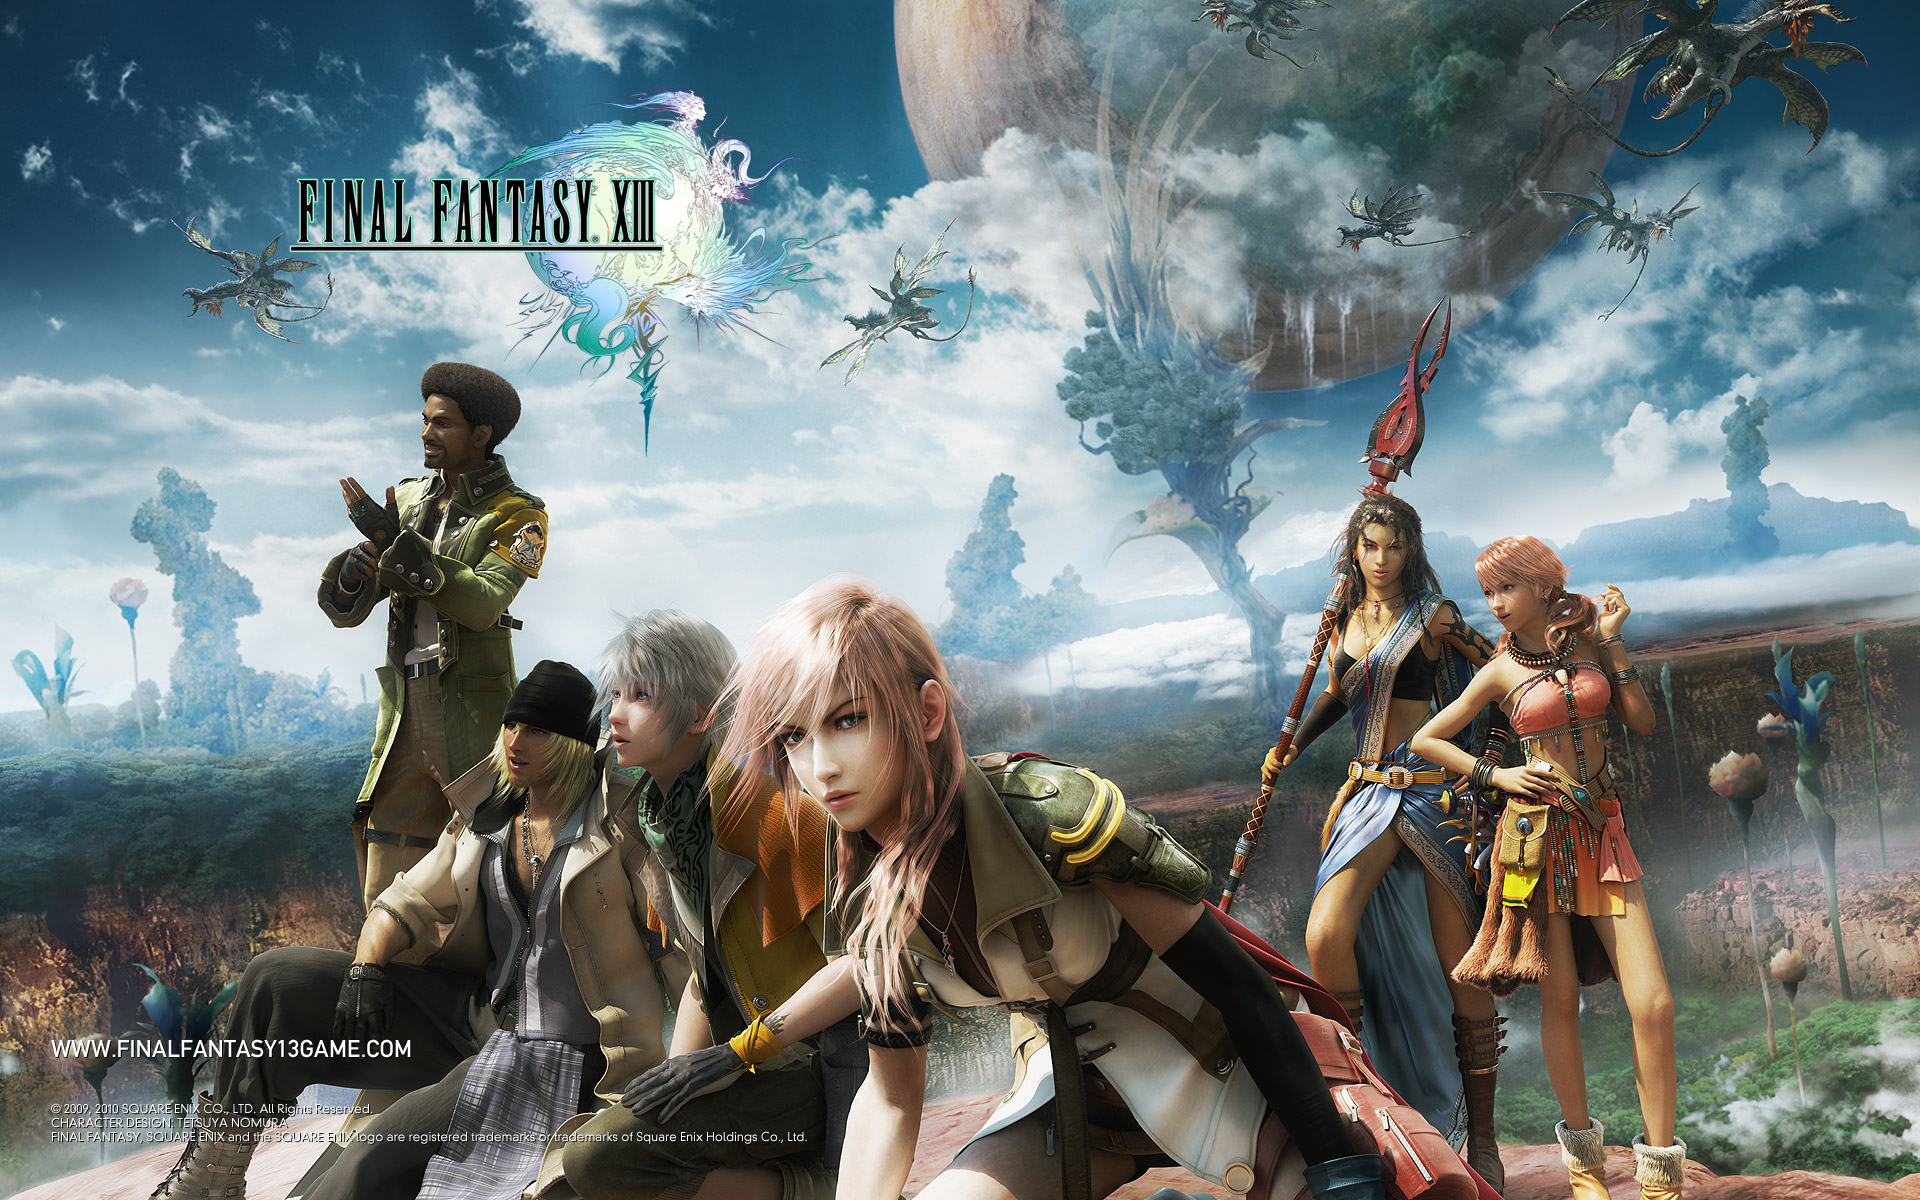 ffxiii_wallpaper-14